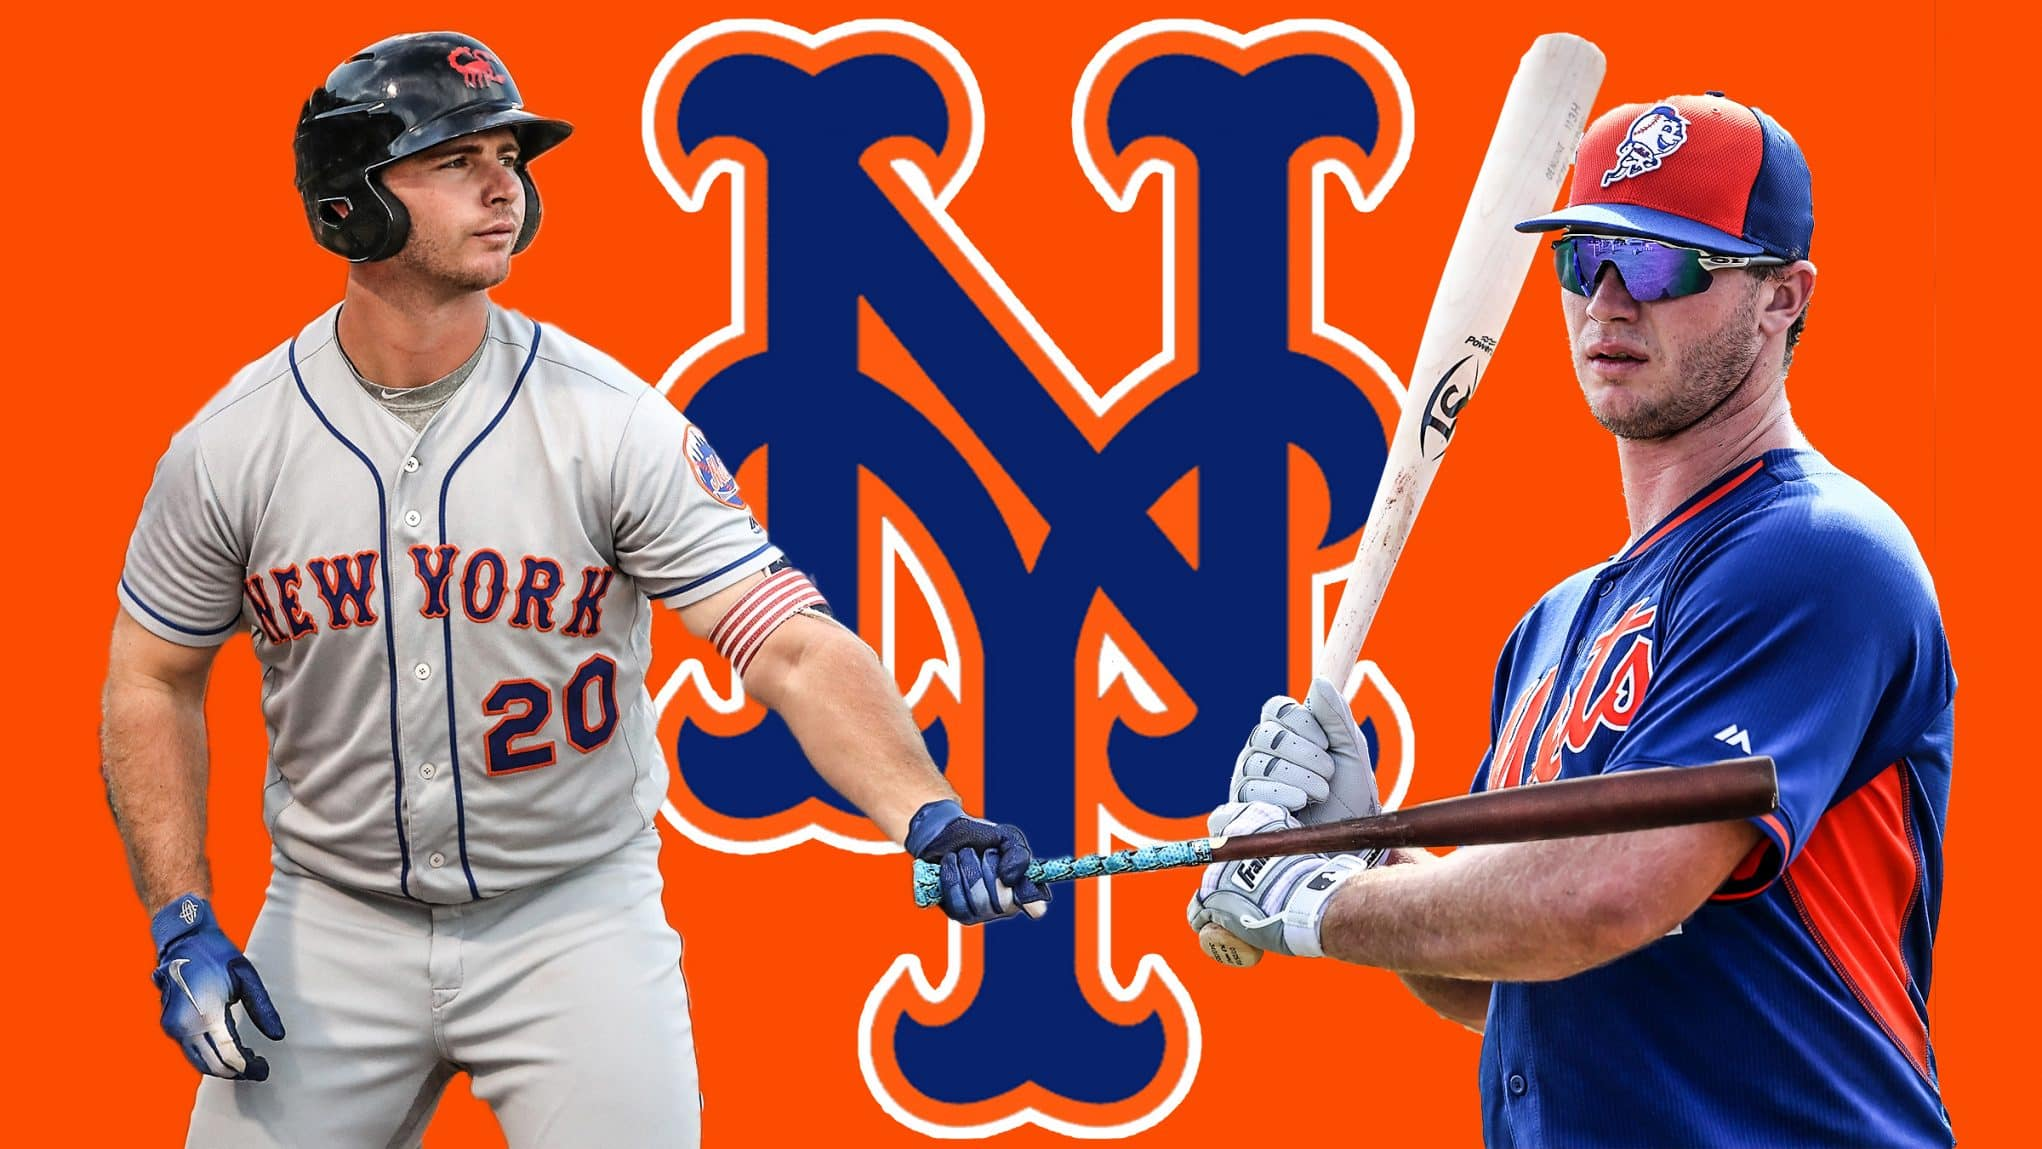 Pete Alonso Wallpapers   Top Pete Alonso Backgrounds 2042x1149